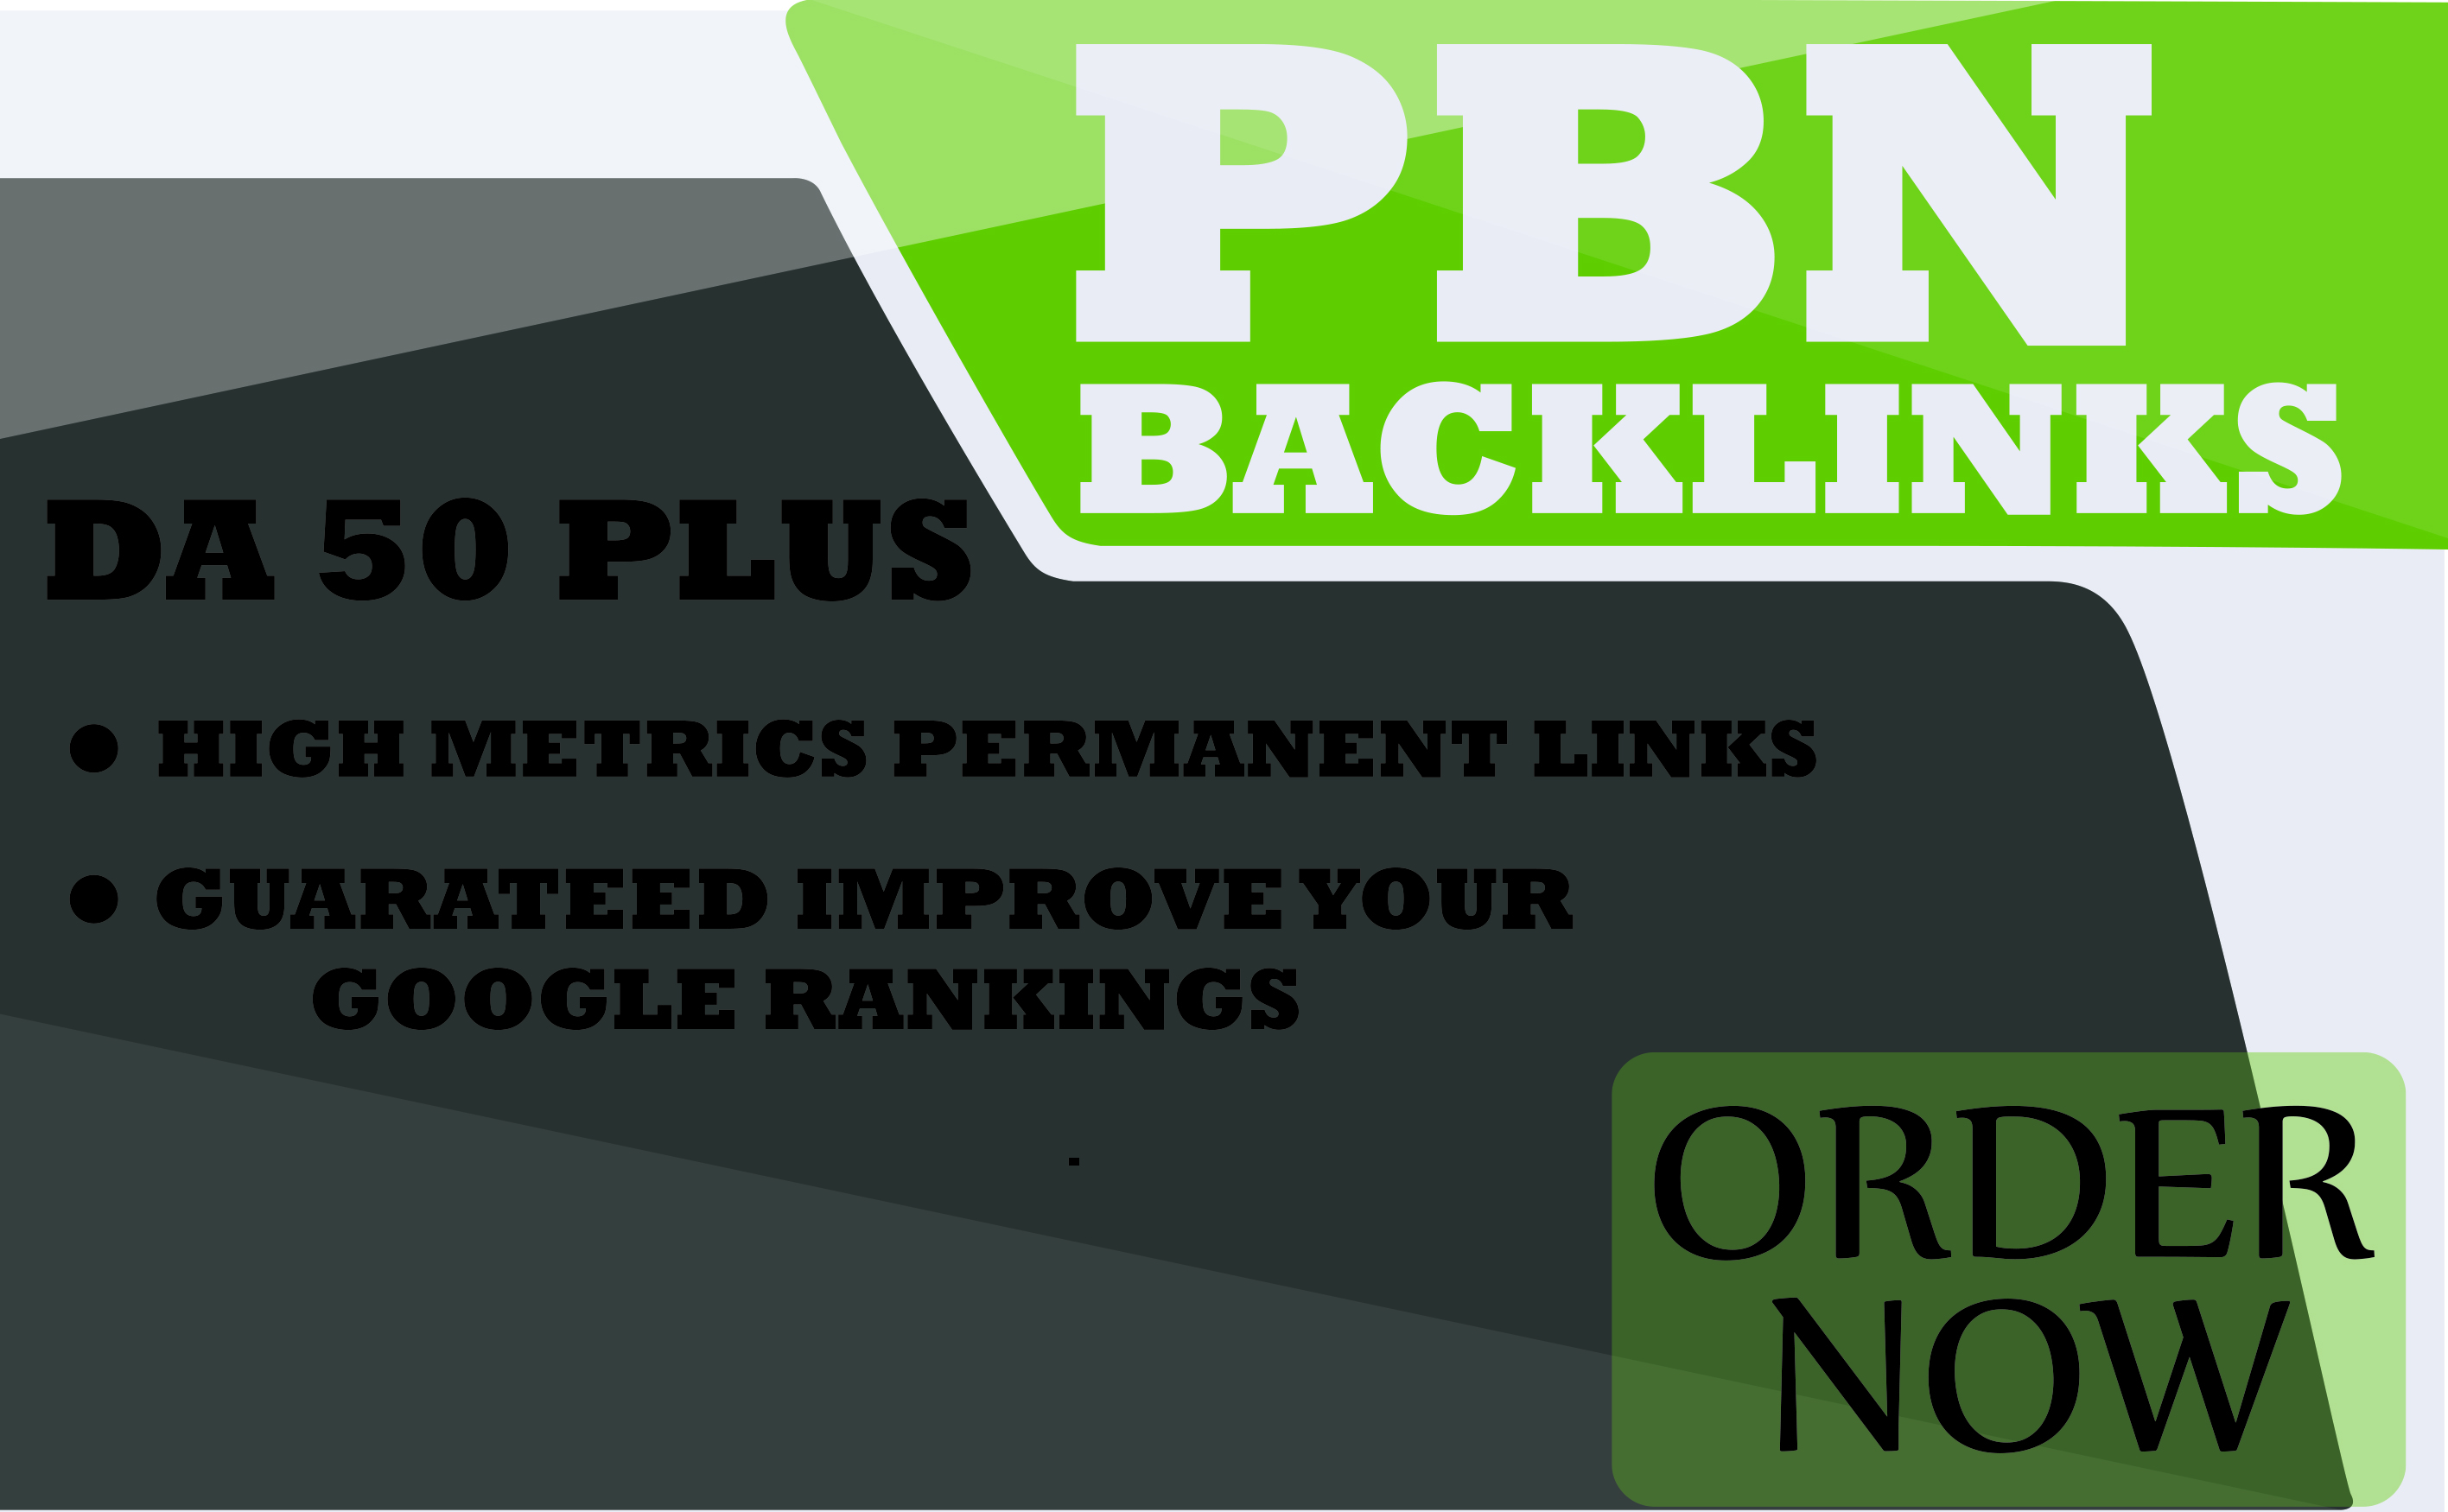 10 powerful DA 50 plus homepage PBN backlinks with unique content